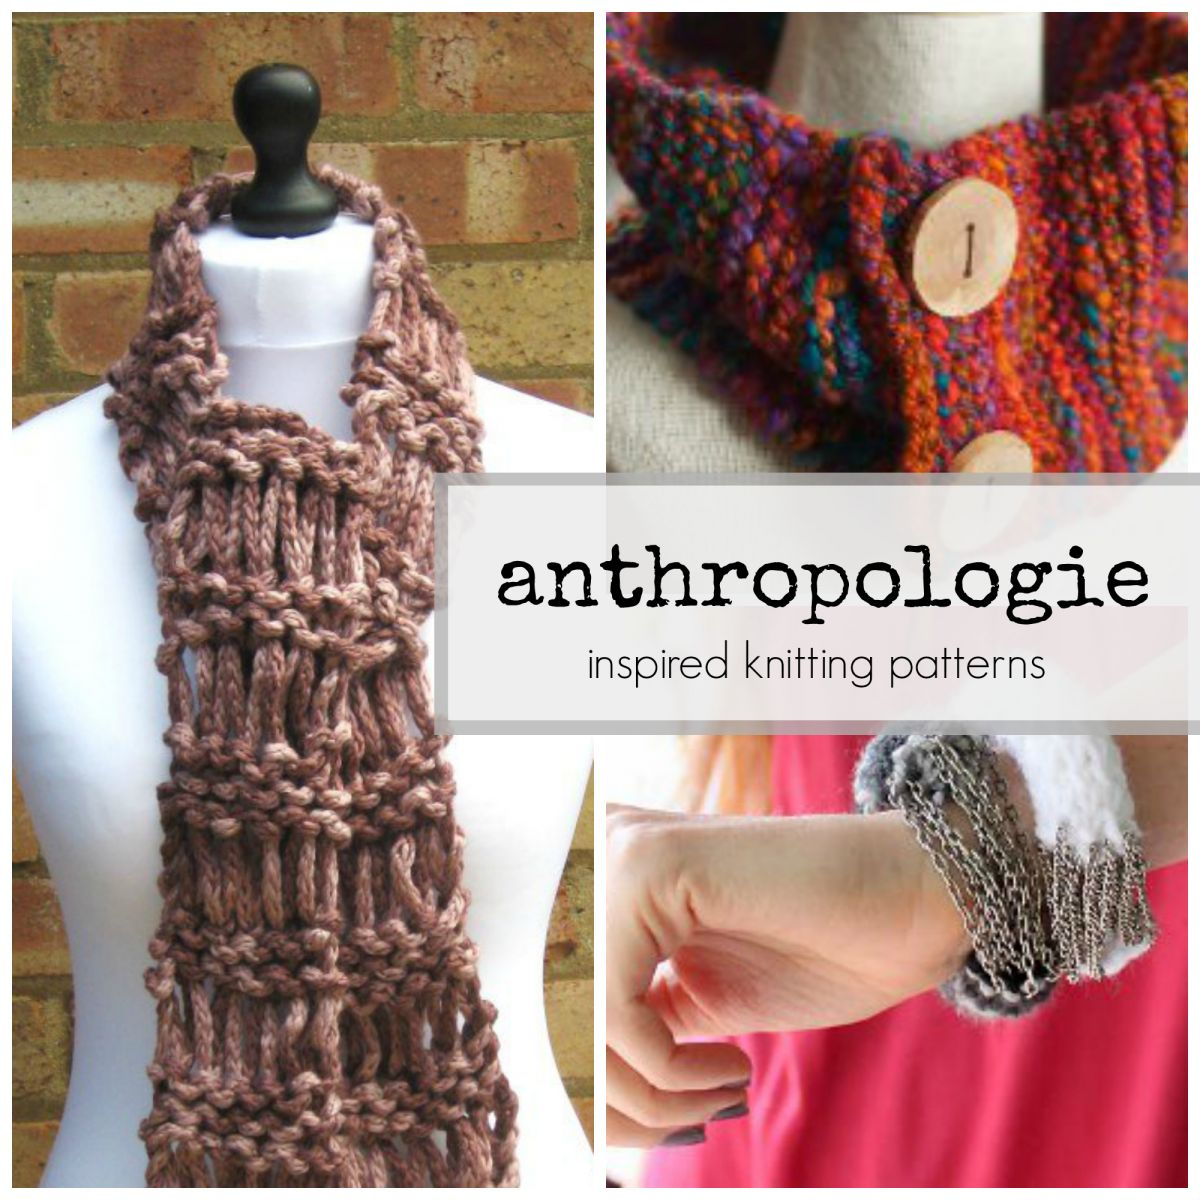 Anthropologie Inspired Kniting Patterns